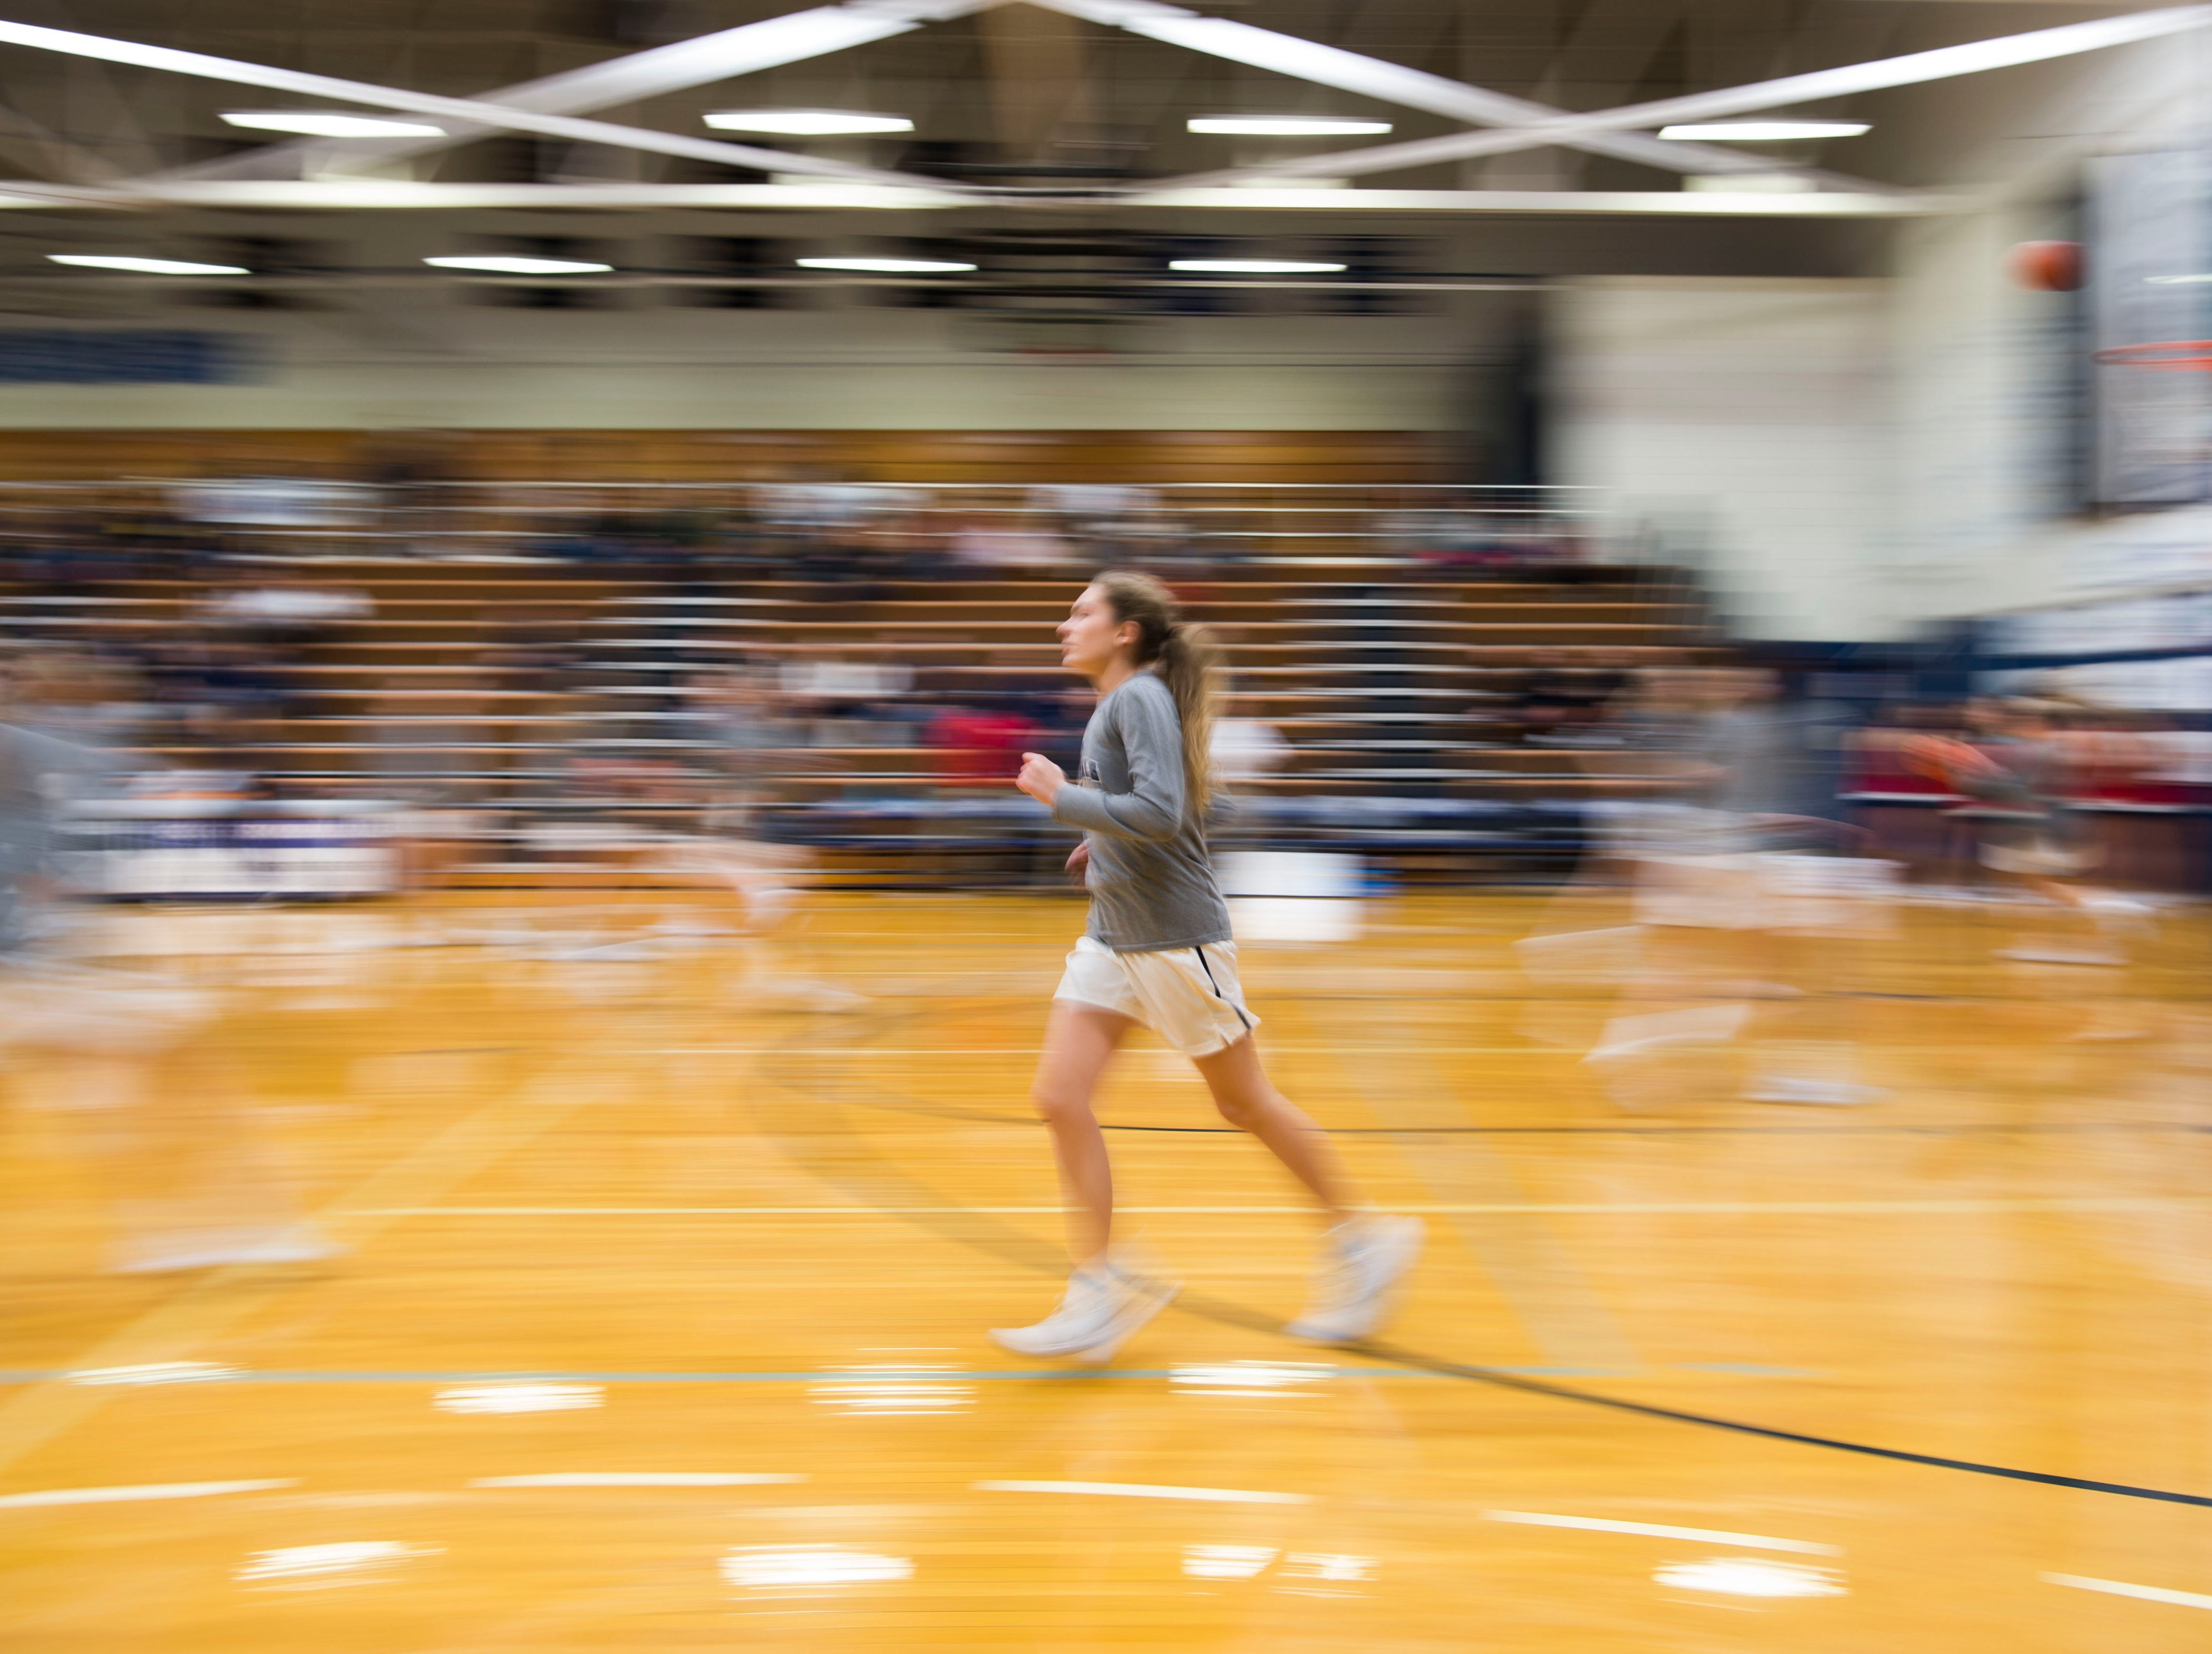 A Farragut player warms up before a high school basketball game between Maryville and Farragut at Farragut, Friday, Jan. 11, 2019.